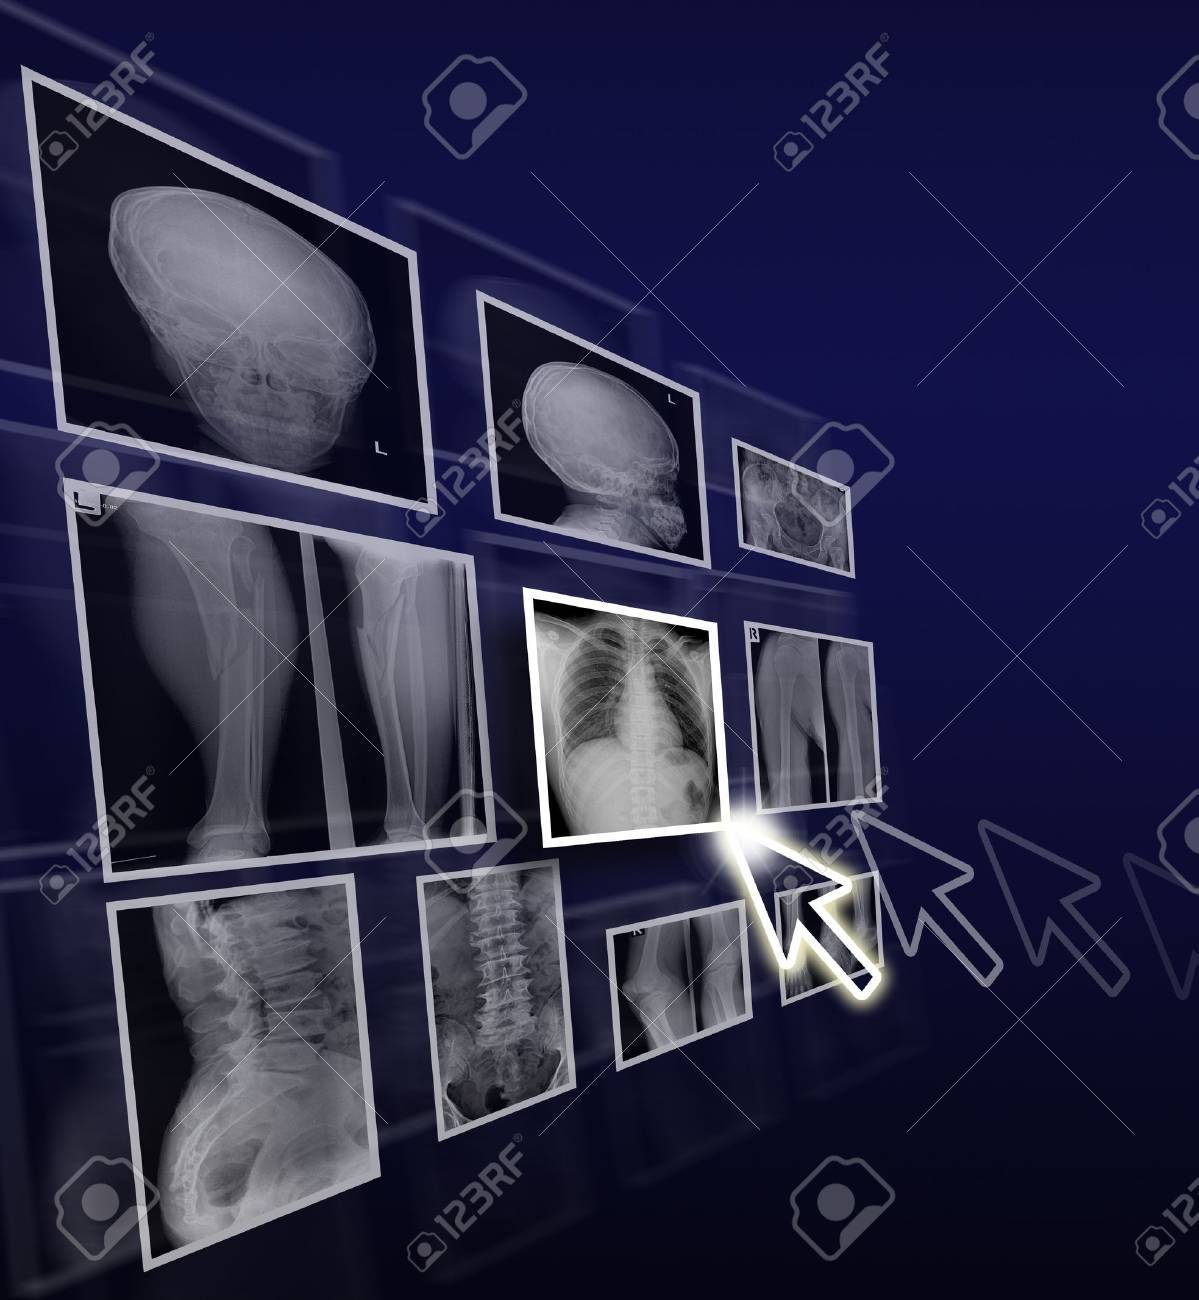 Health care concept by x ray films on gradient background. Stock Photo - 12511759